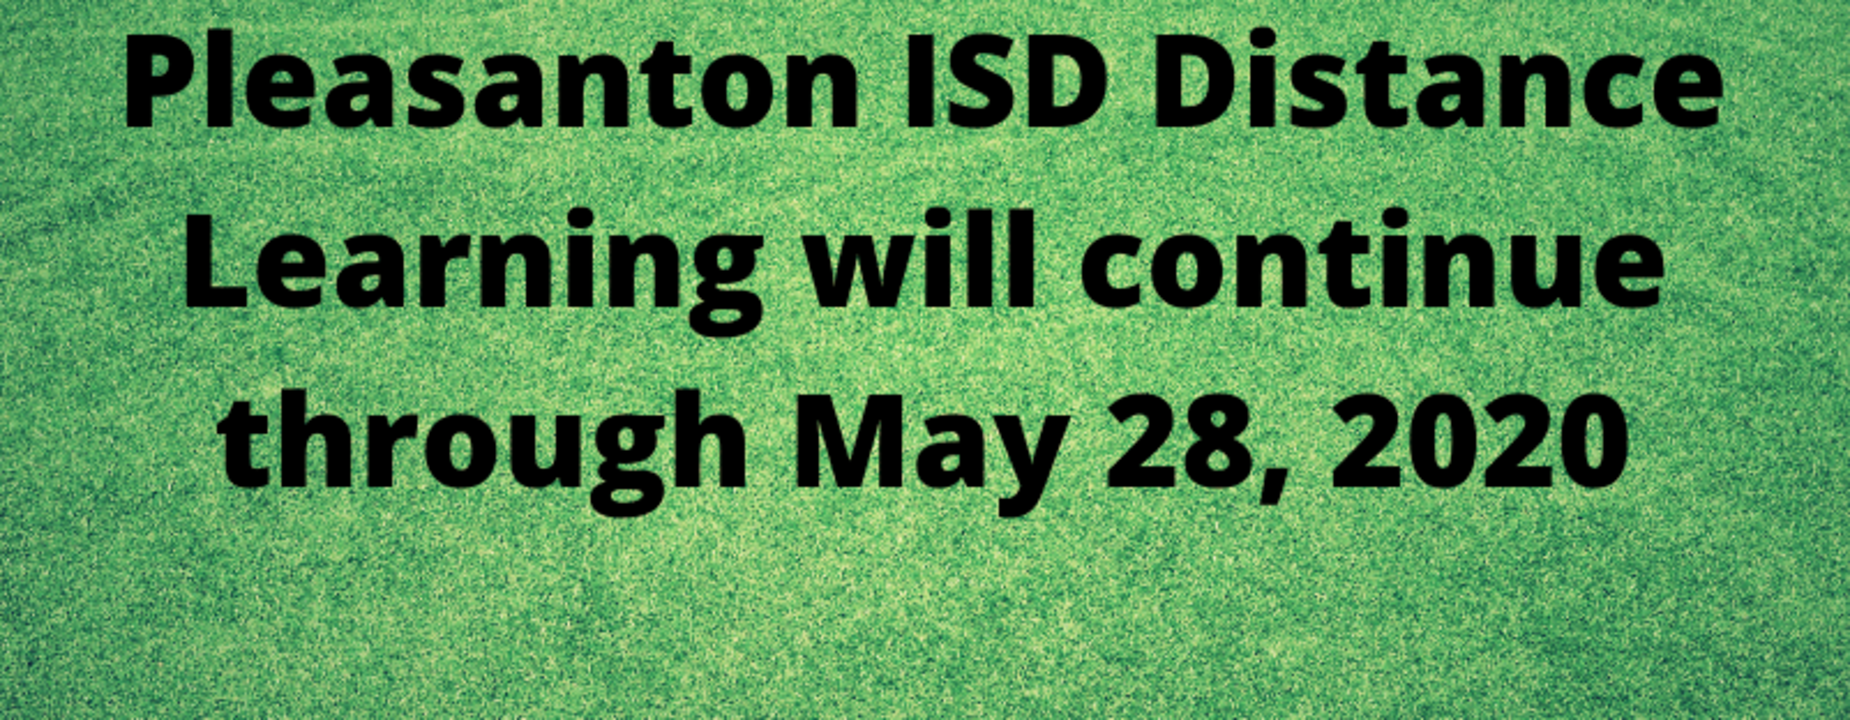 Distance Learning will continue through May 28, 2020